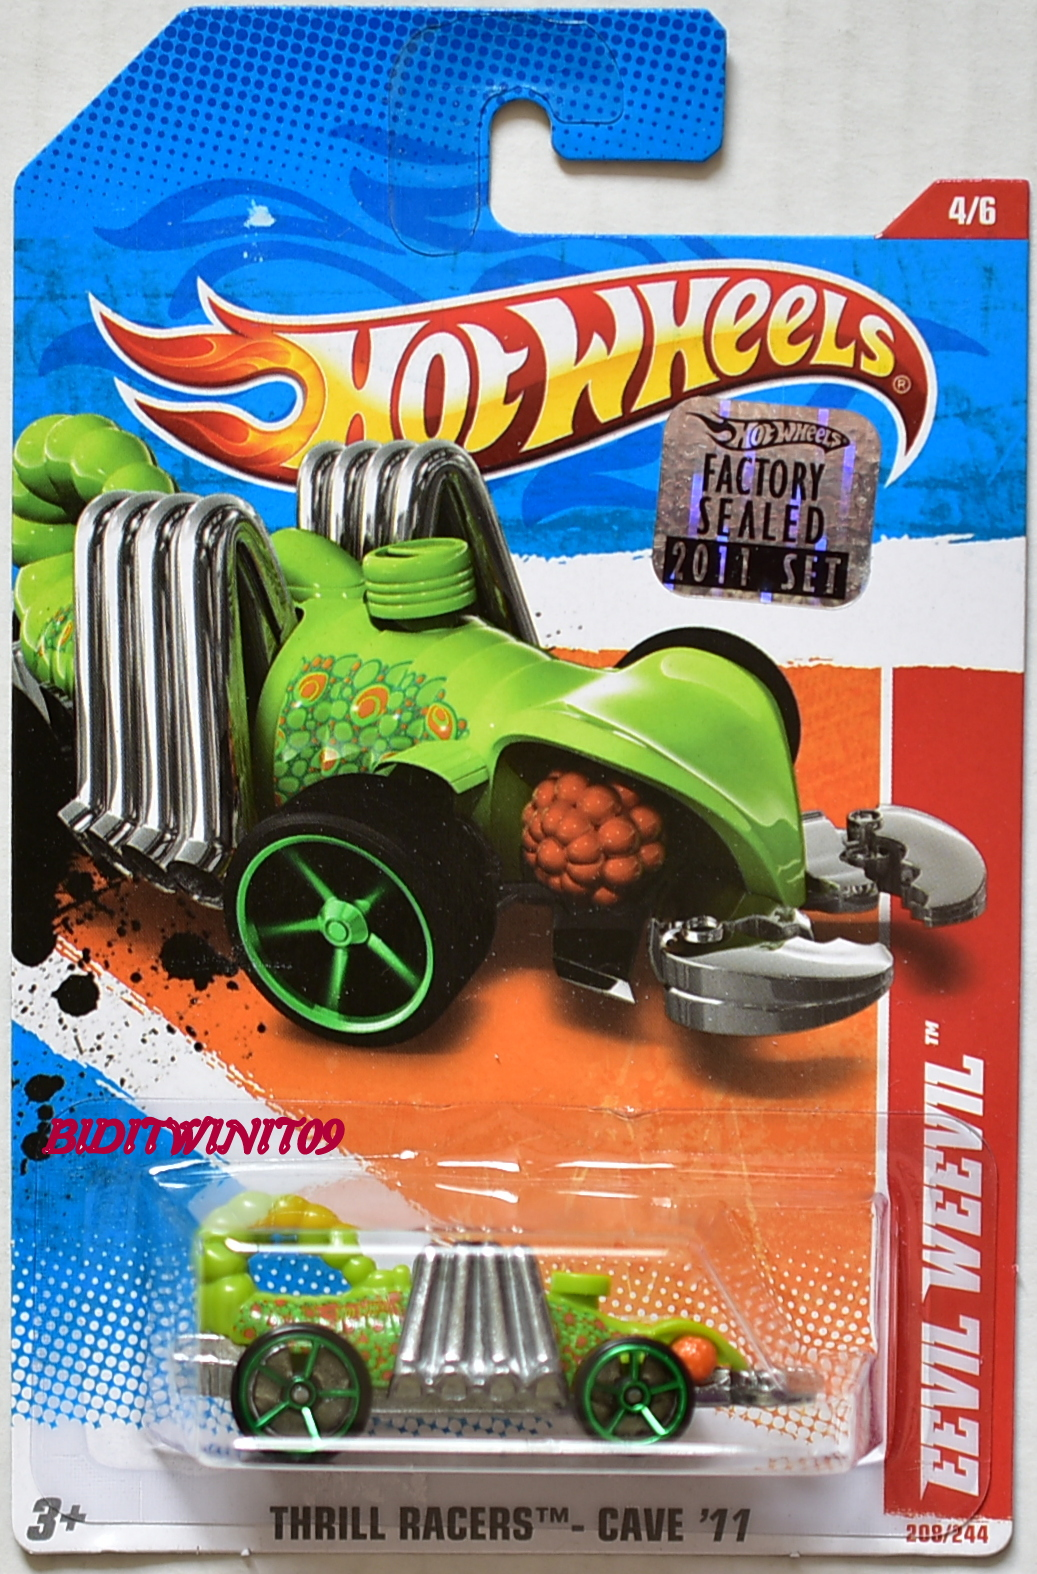 HOT WHEELS 2011 THRILL RACERS - CAVE EEVIL WEEVIL #4/6 FACTORY SEALED E+